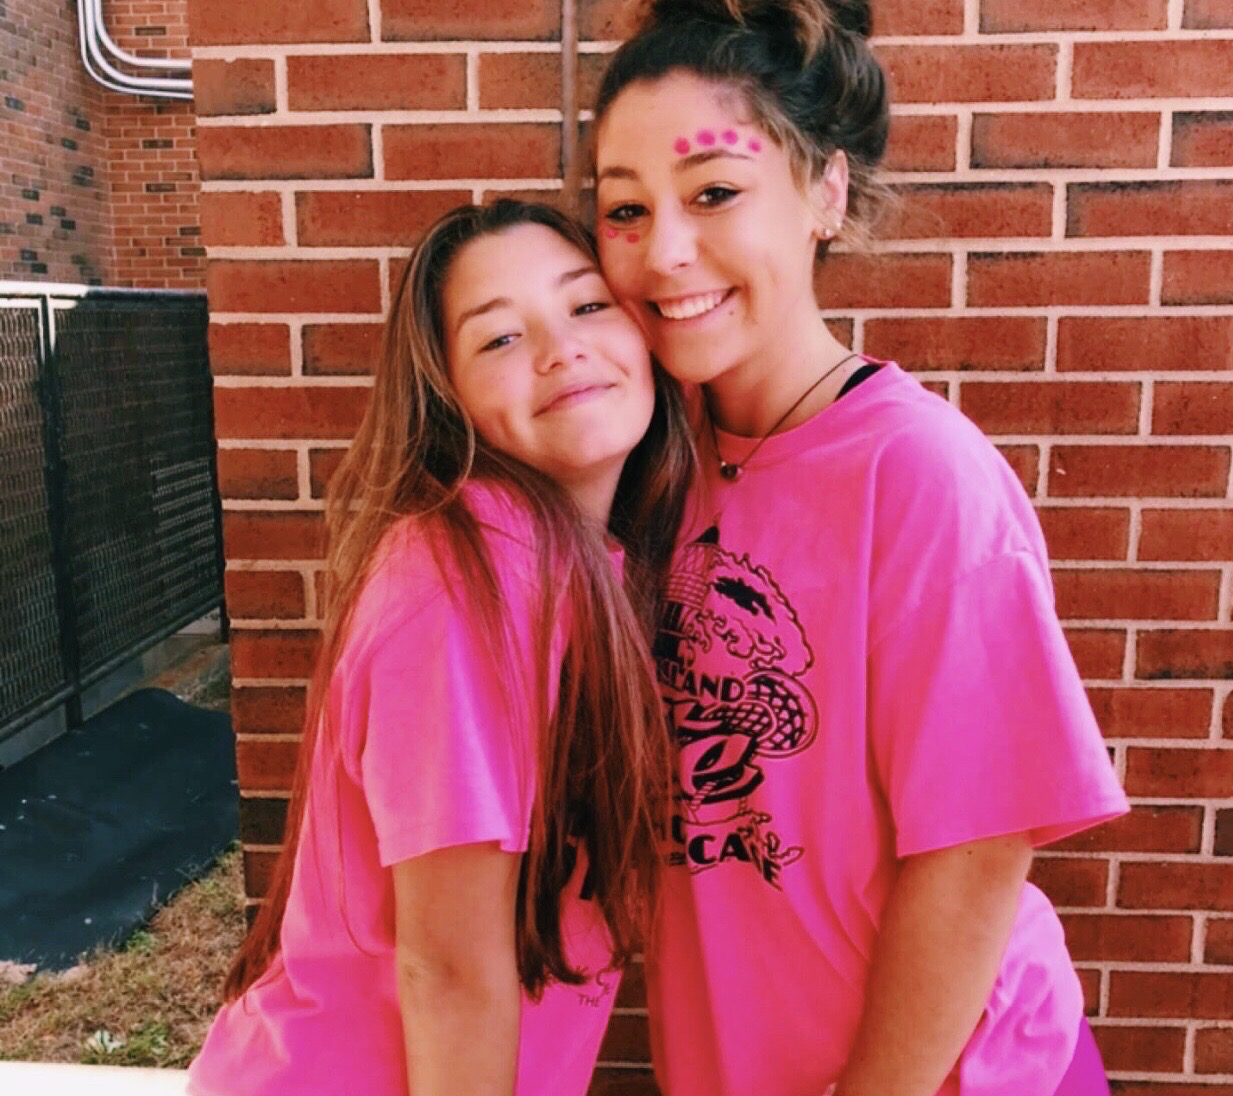 Veronica and Maureen on Pink day 2018.